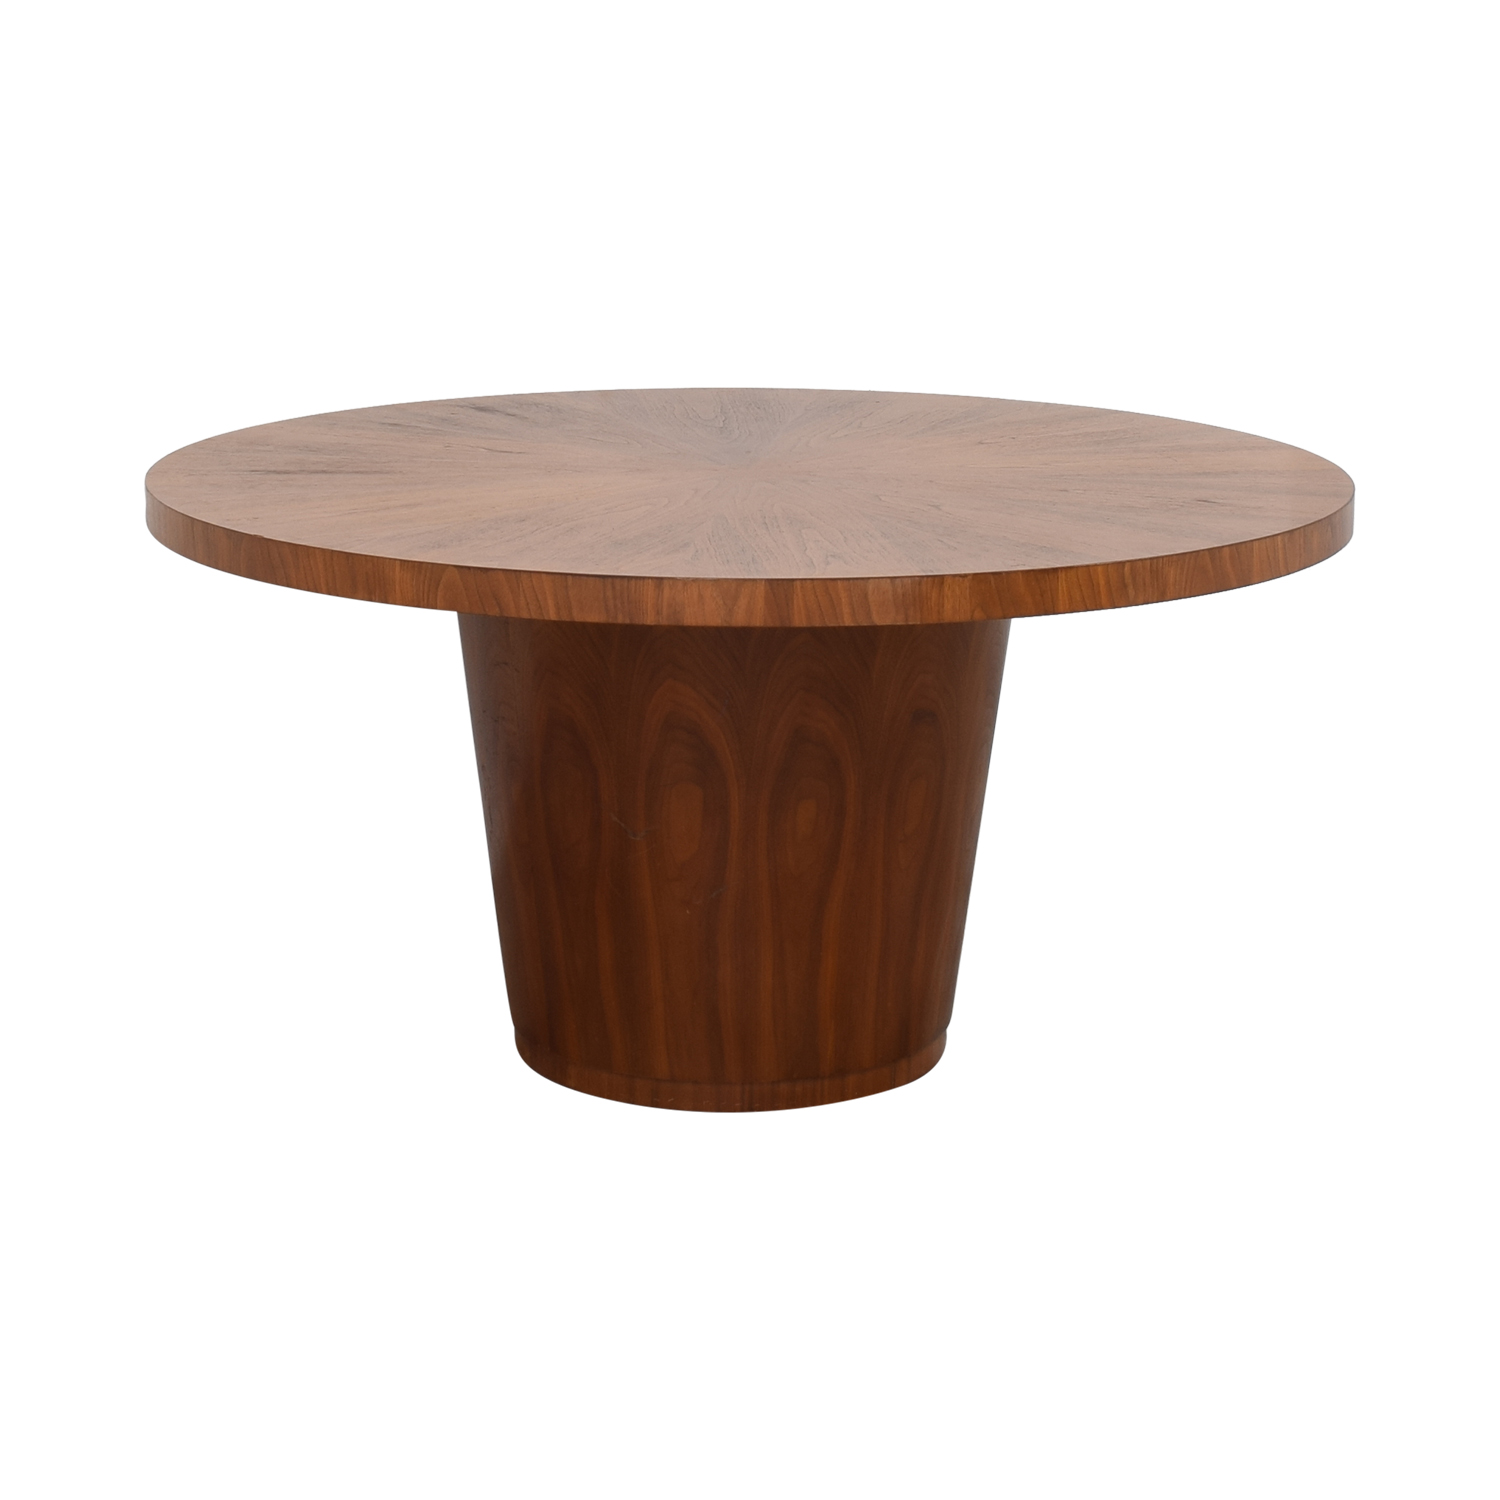 buy Crate & Barrel Crate & Barrel Round Dining Table online